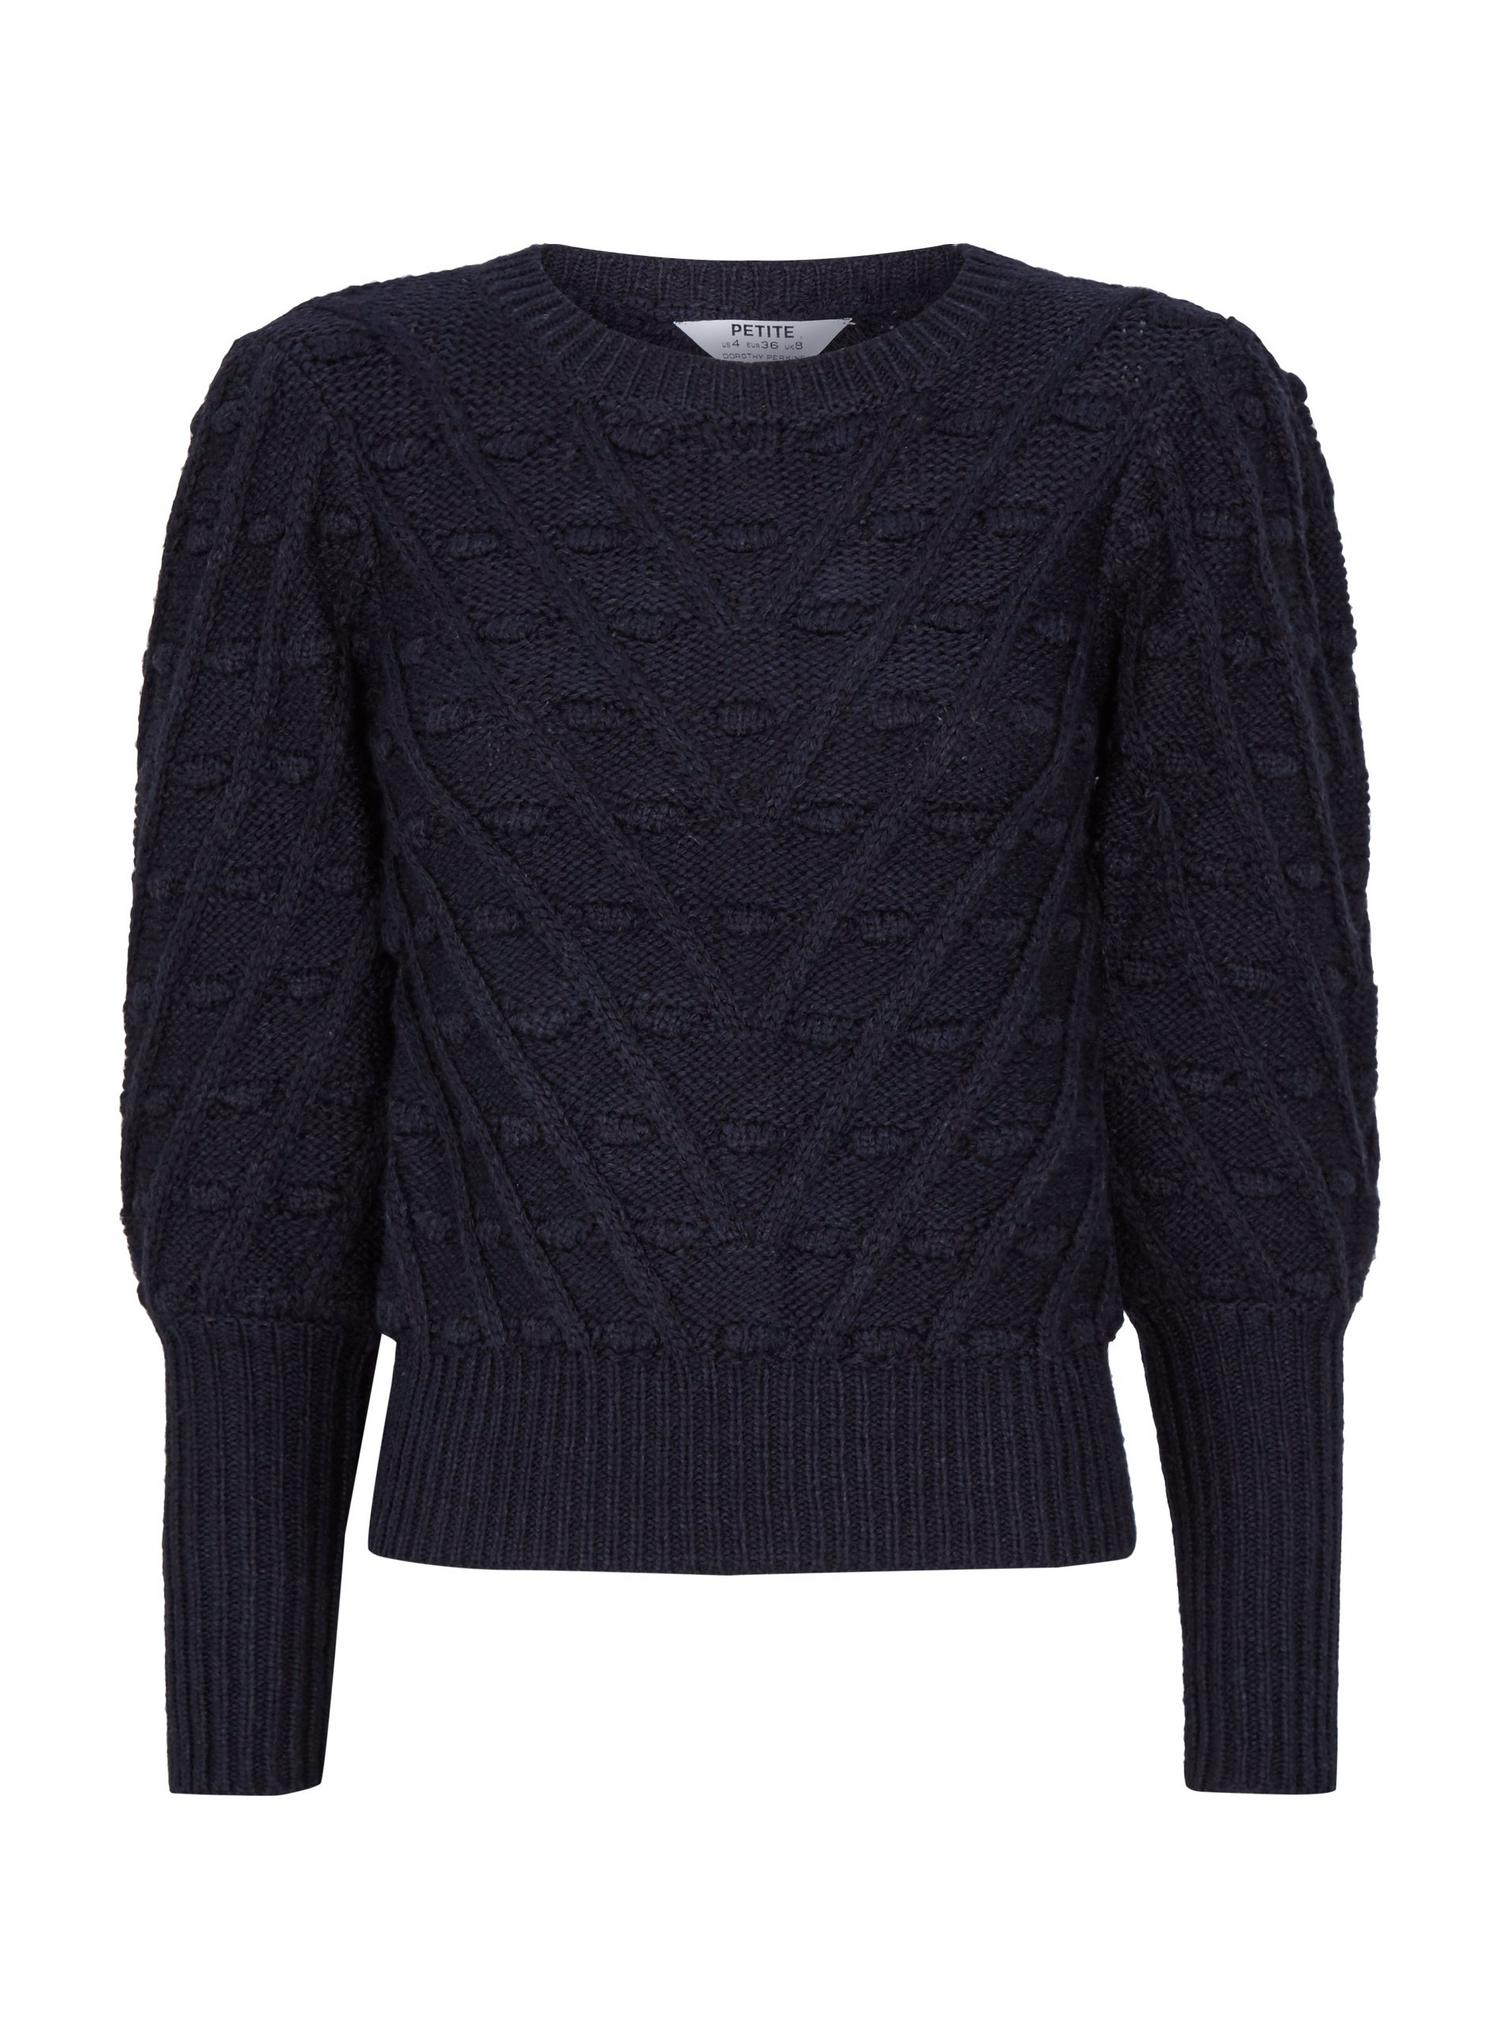 148 DP Petite Navy Blue Bobble Jumper image number 4